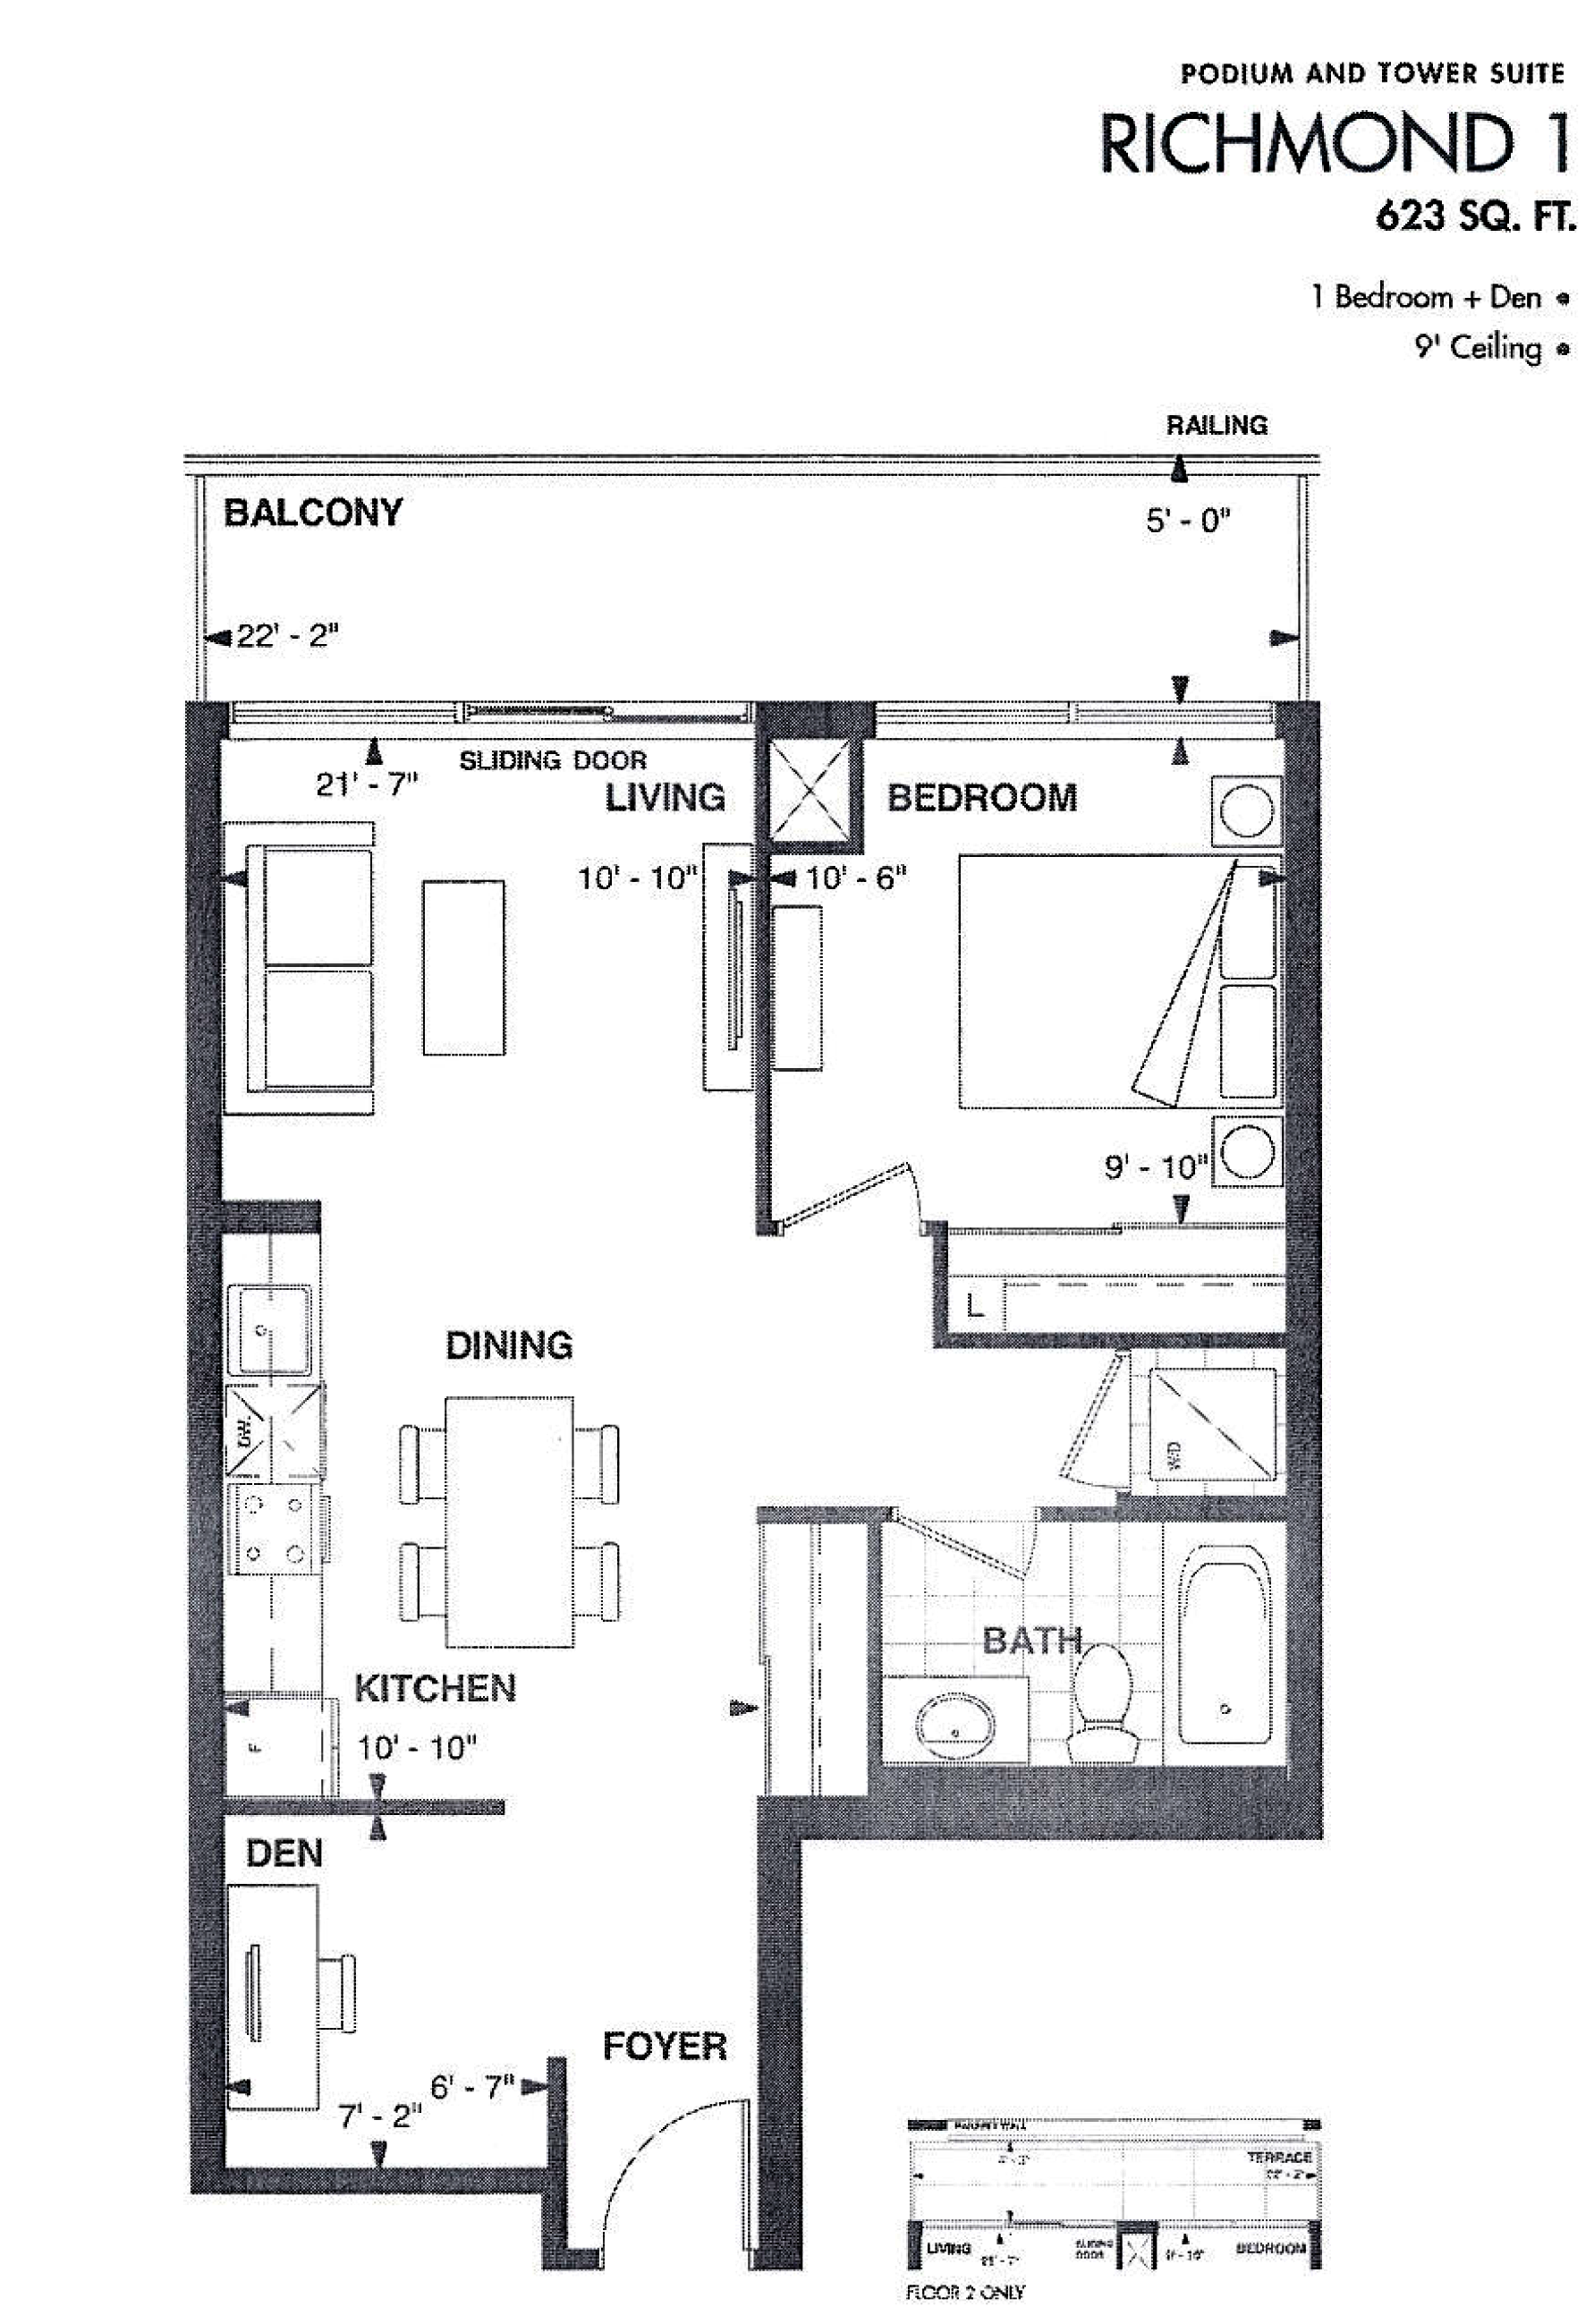 AXIUM CONDOS - FLOORPLAN ONE BED 623 SQ FT - CONTACT YOSSI KAPLAN